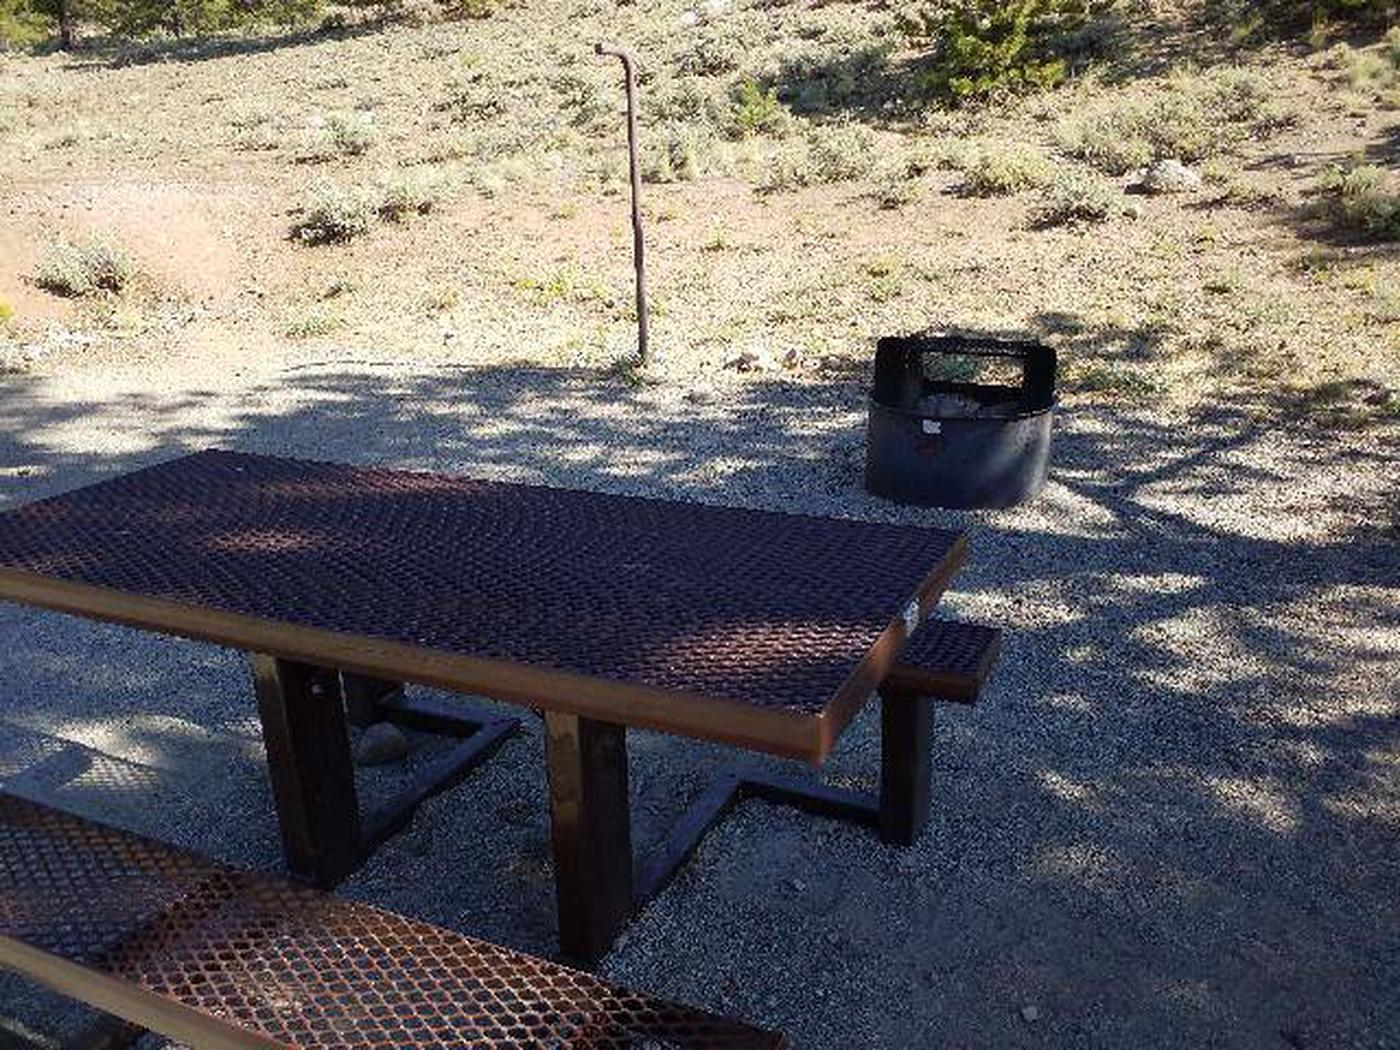 White Star Campground, site 28 picnic table and fire ring